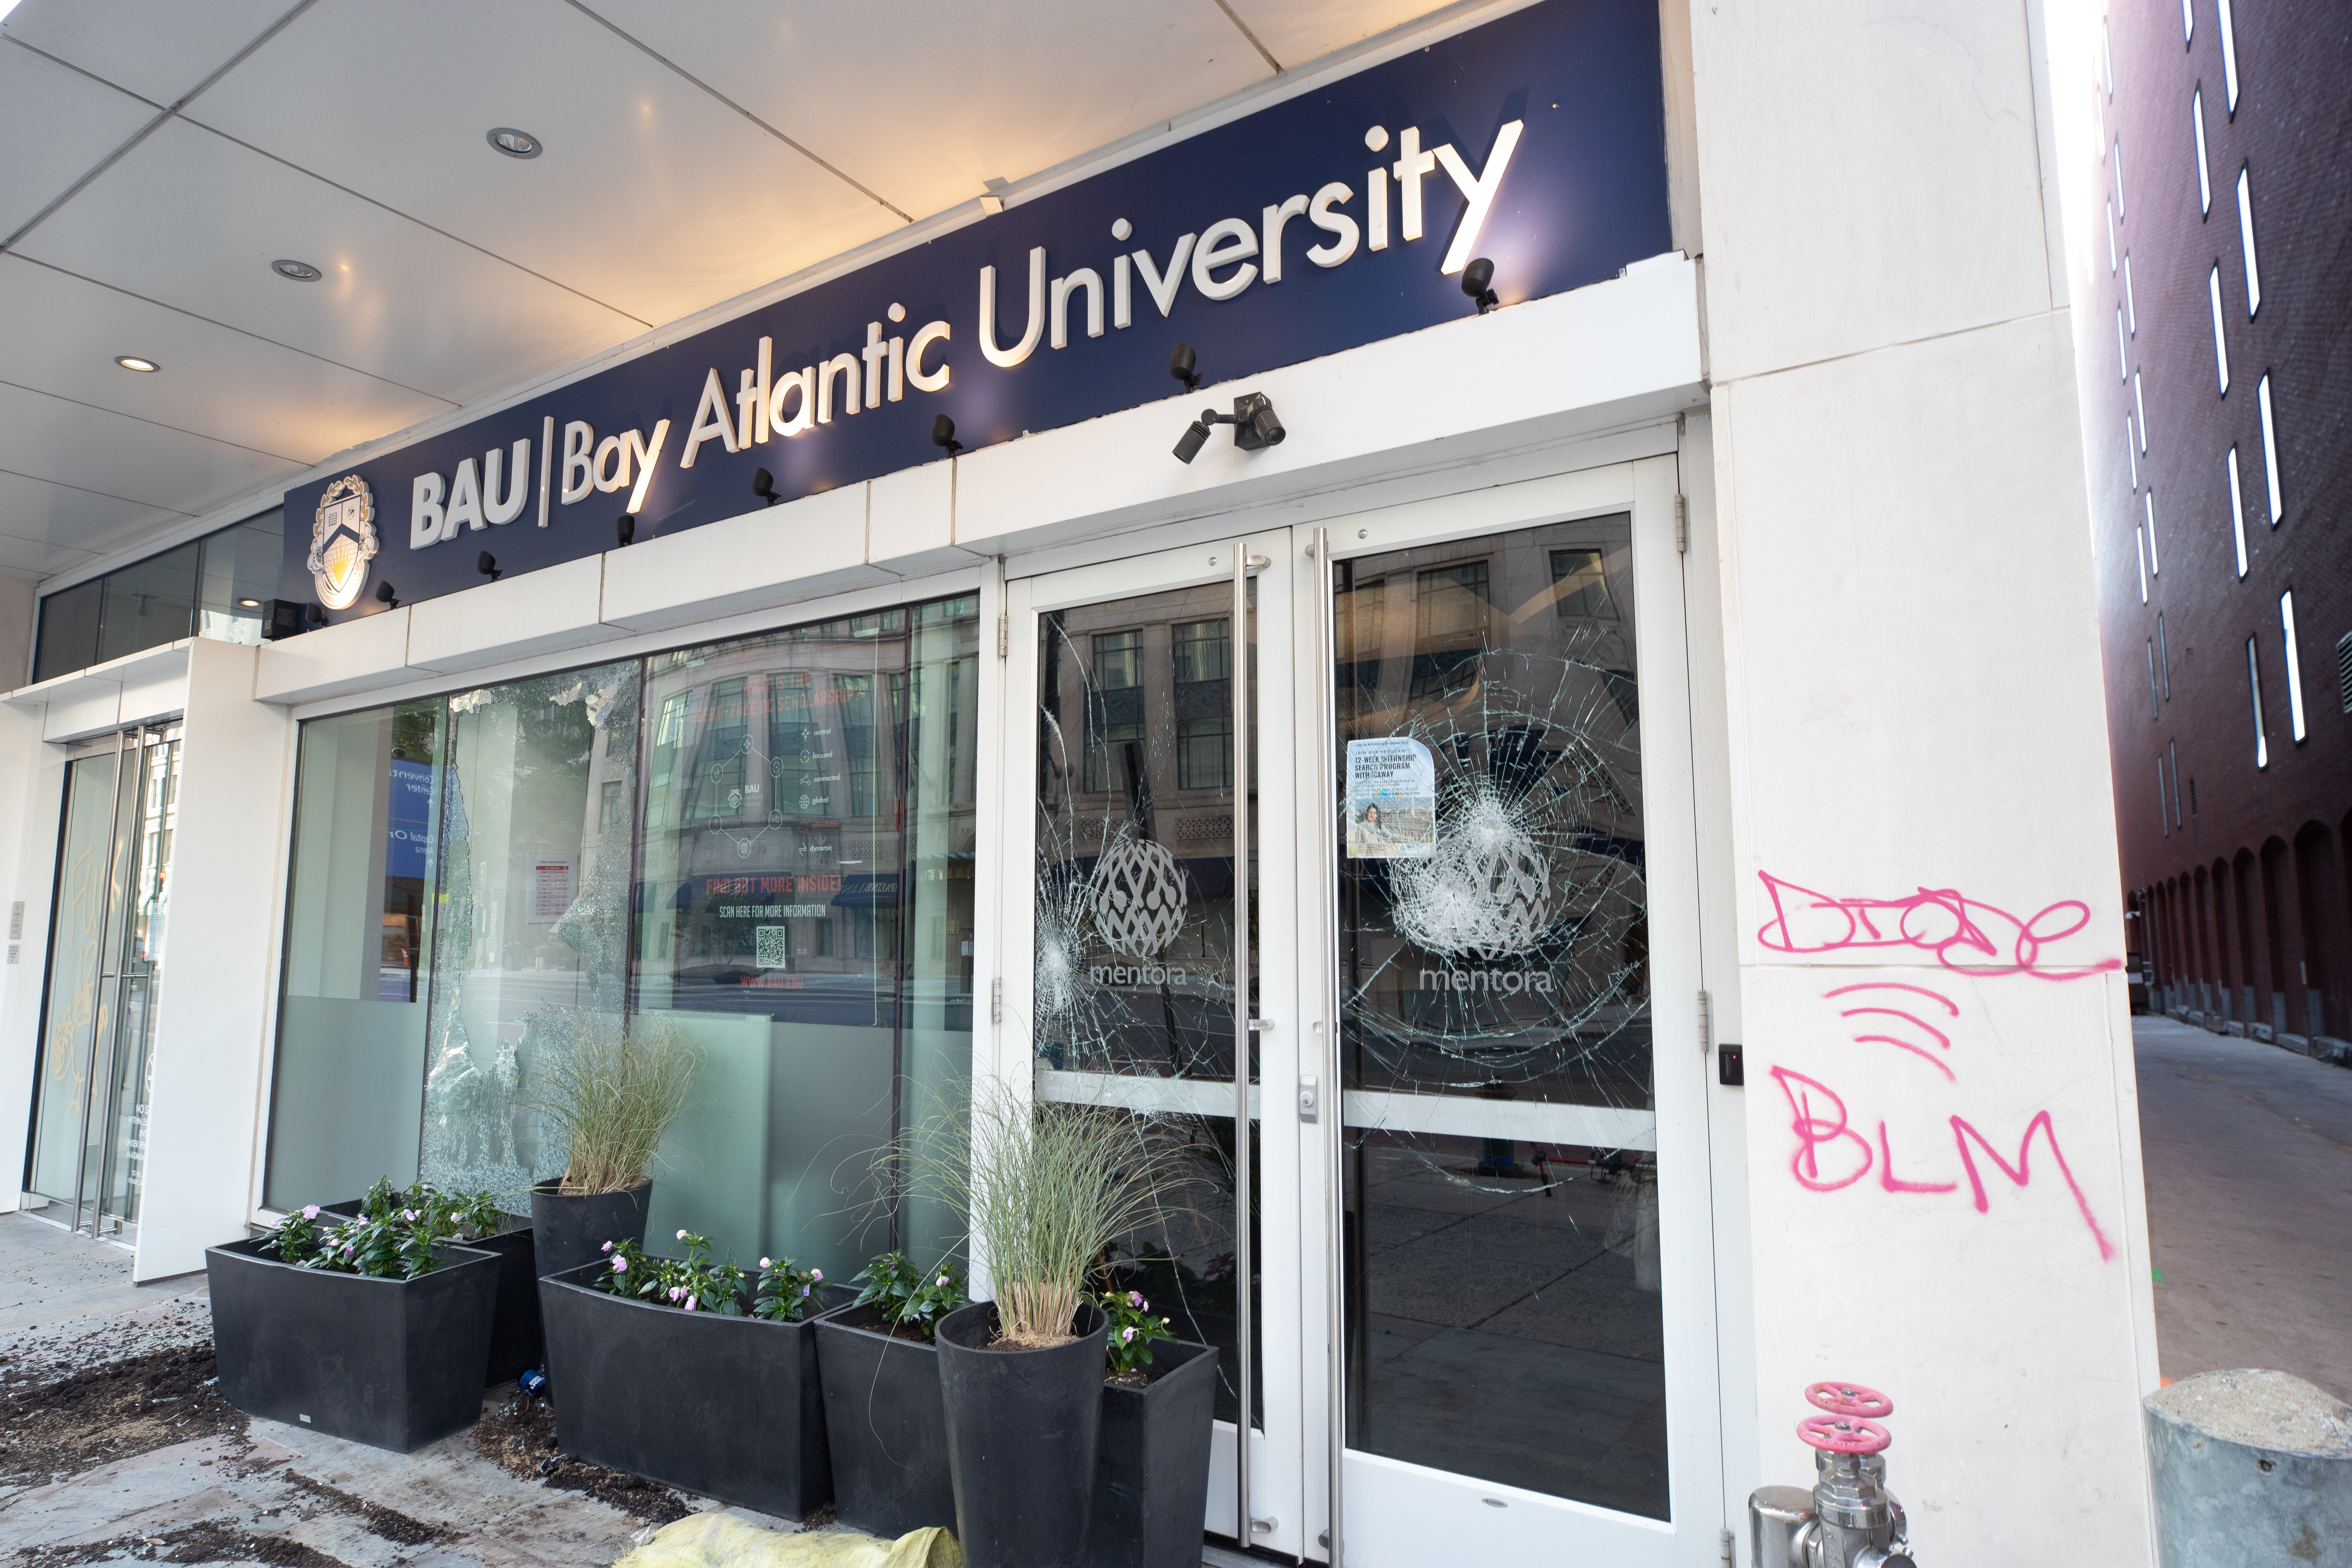 Bay Atlantic University on 15th St. NW. (Photo: Kaylee C. Greenlee for The Daily Caller)